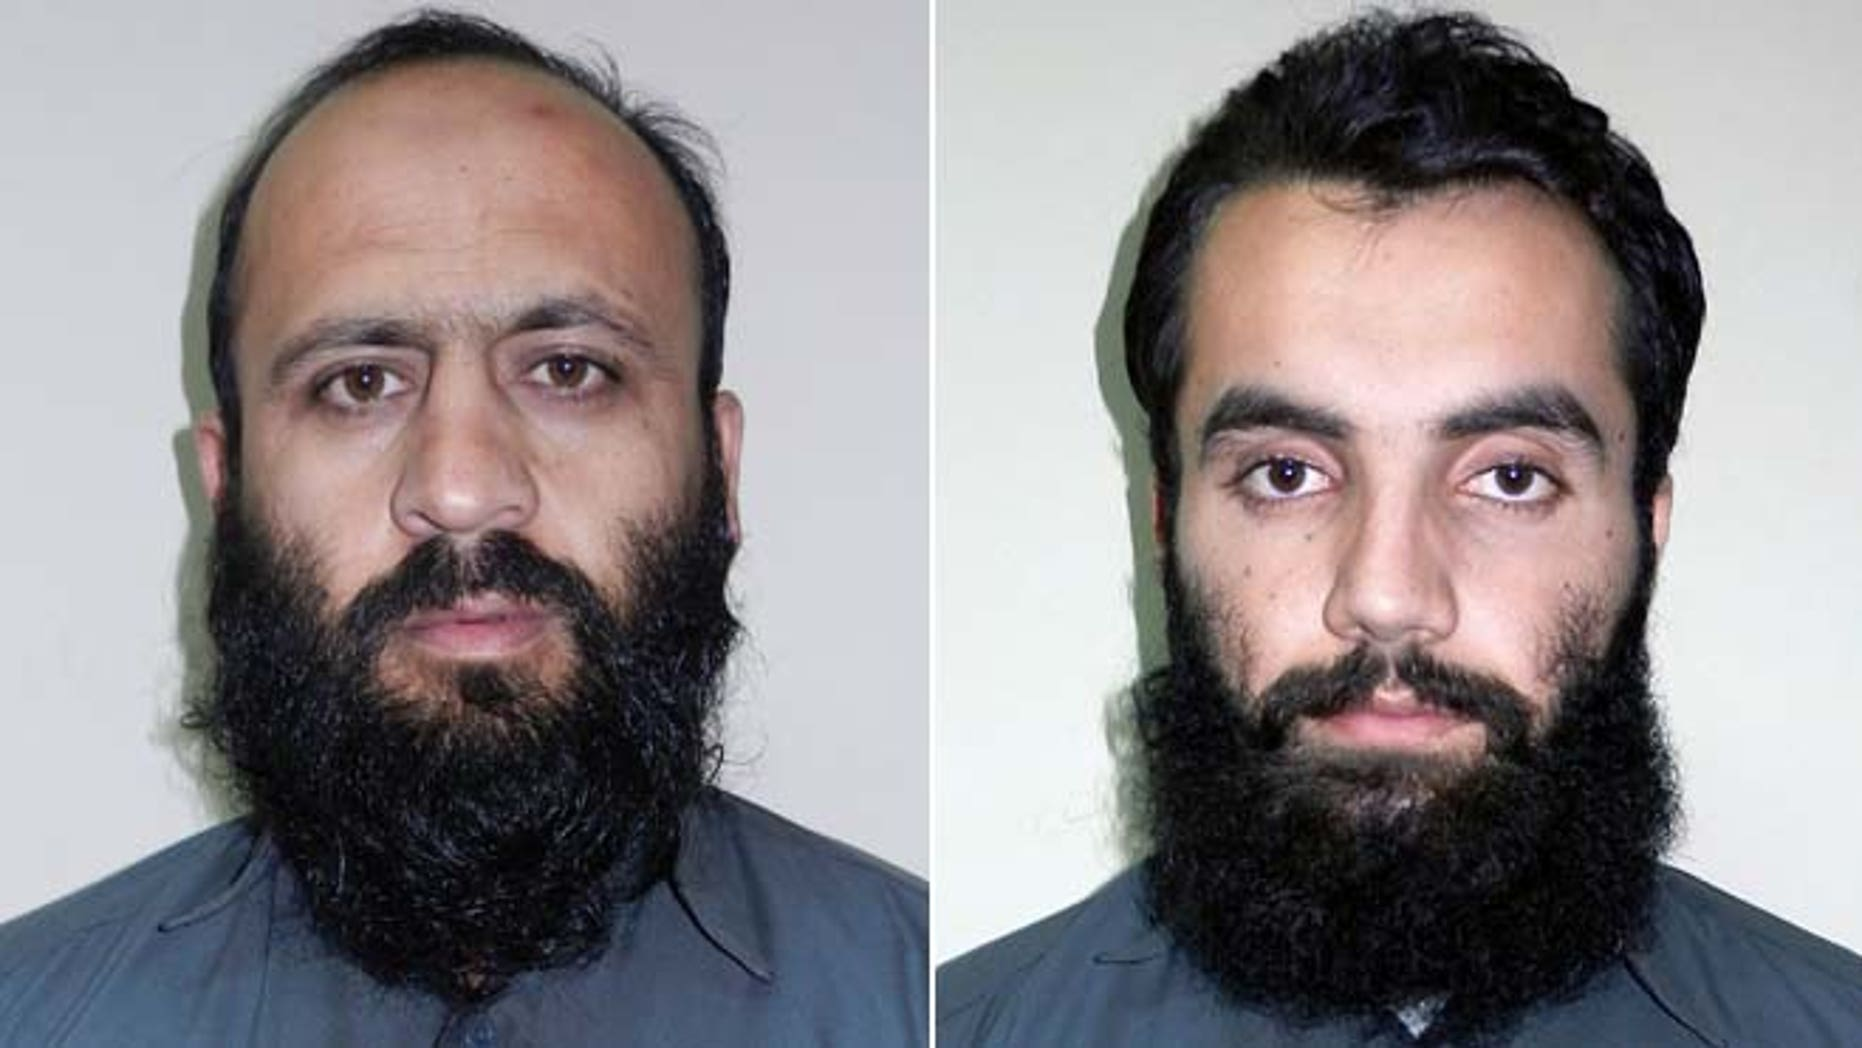 In these Oct. 15, 2014 photos provided by Afghanistan's National Directorate of Security (NDS), Hafiz Rashid, left, and Anis Haqqani, both senior leaders of the Al Qaeda-linked Haqqani network, pose for pictures in Kabul, Afghanistan.